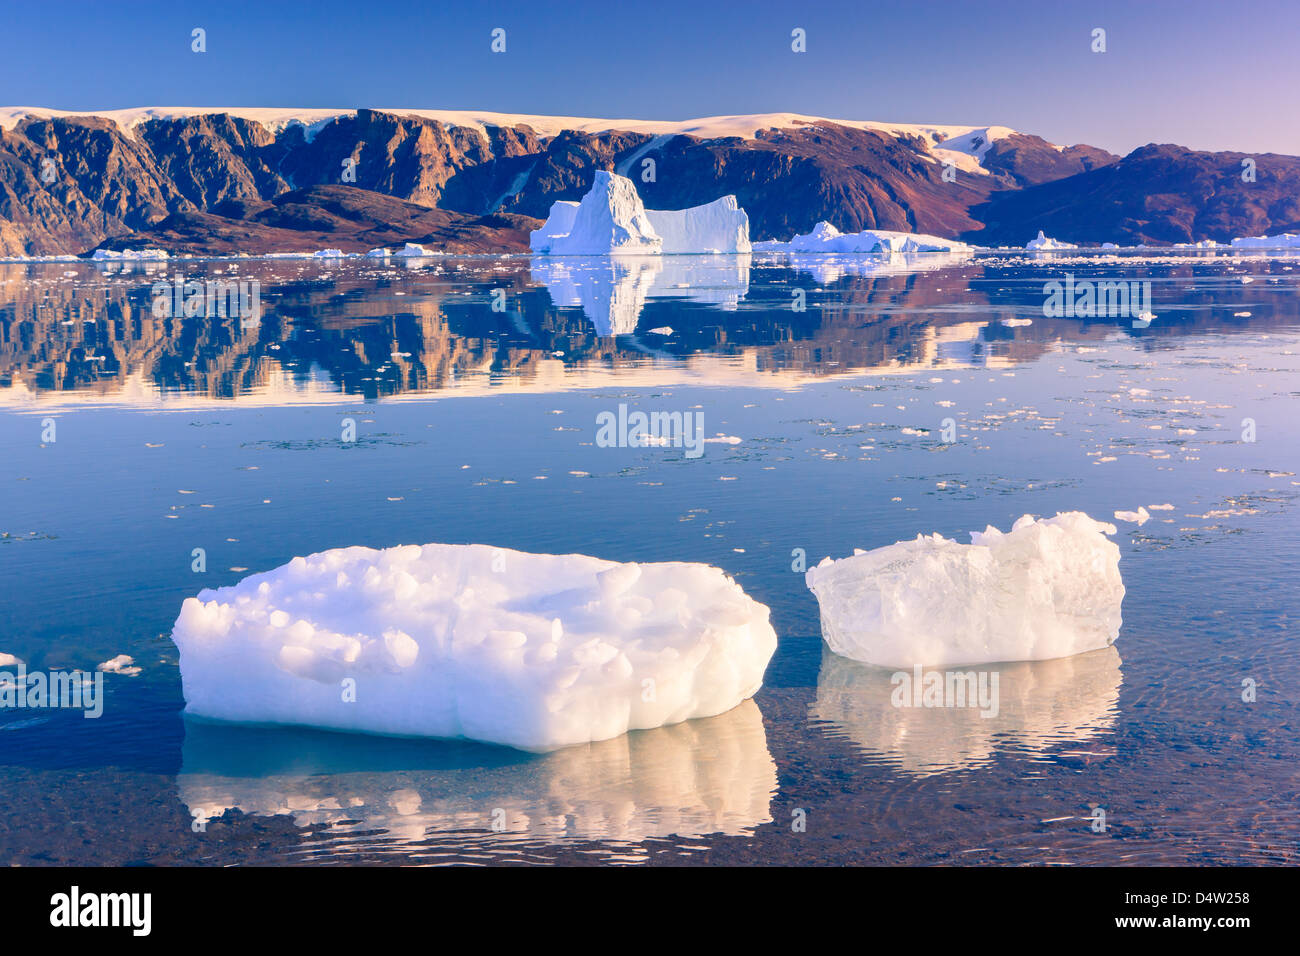 Cruising between the icebergs at Røde Ø, Scoresbysund, Greenland - Stock Image